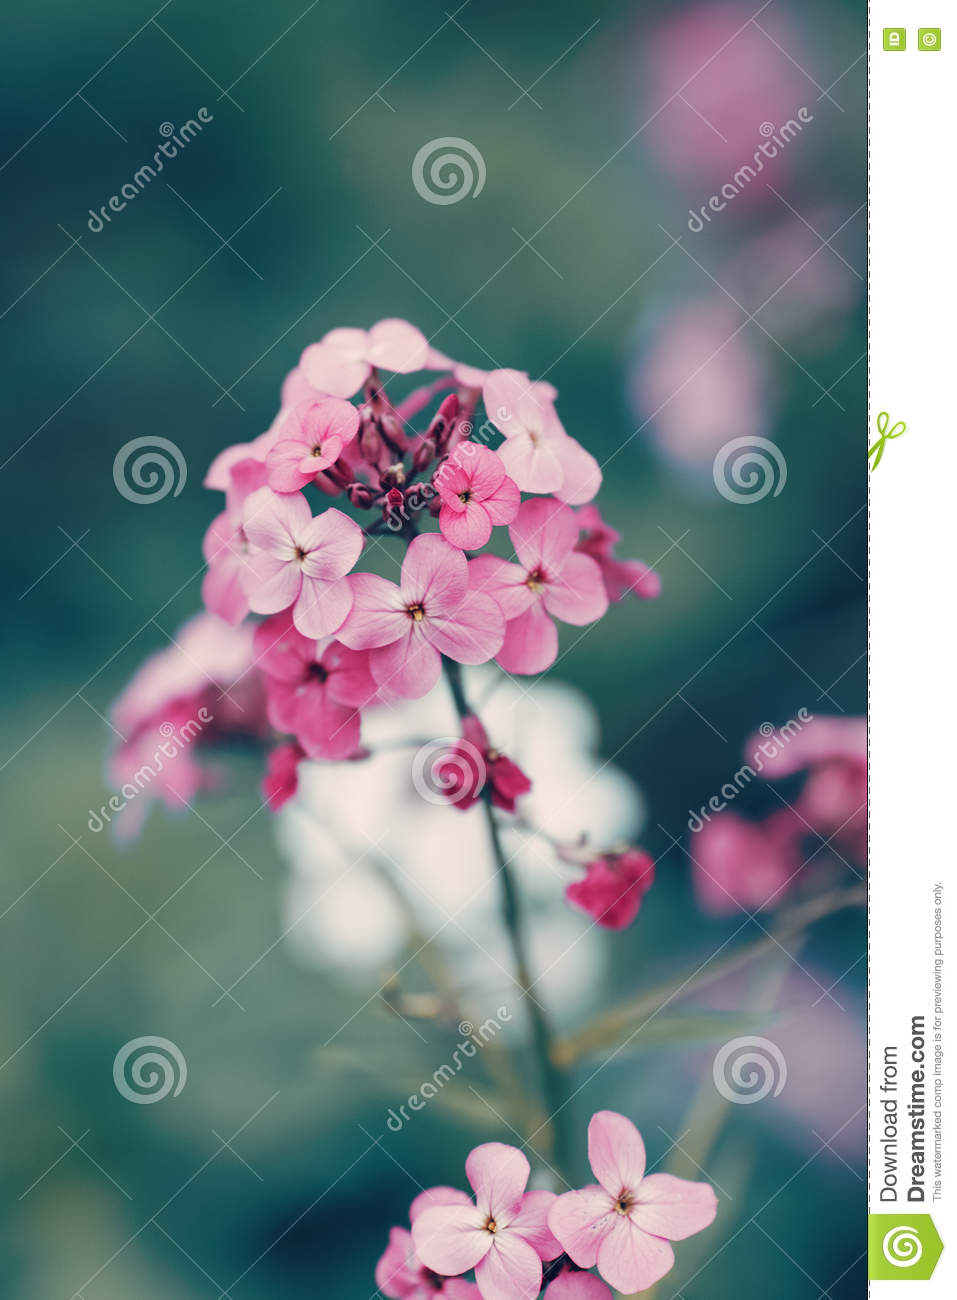 fairy dreamy magic red pink flowers with dark green blue